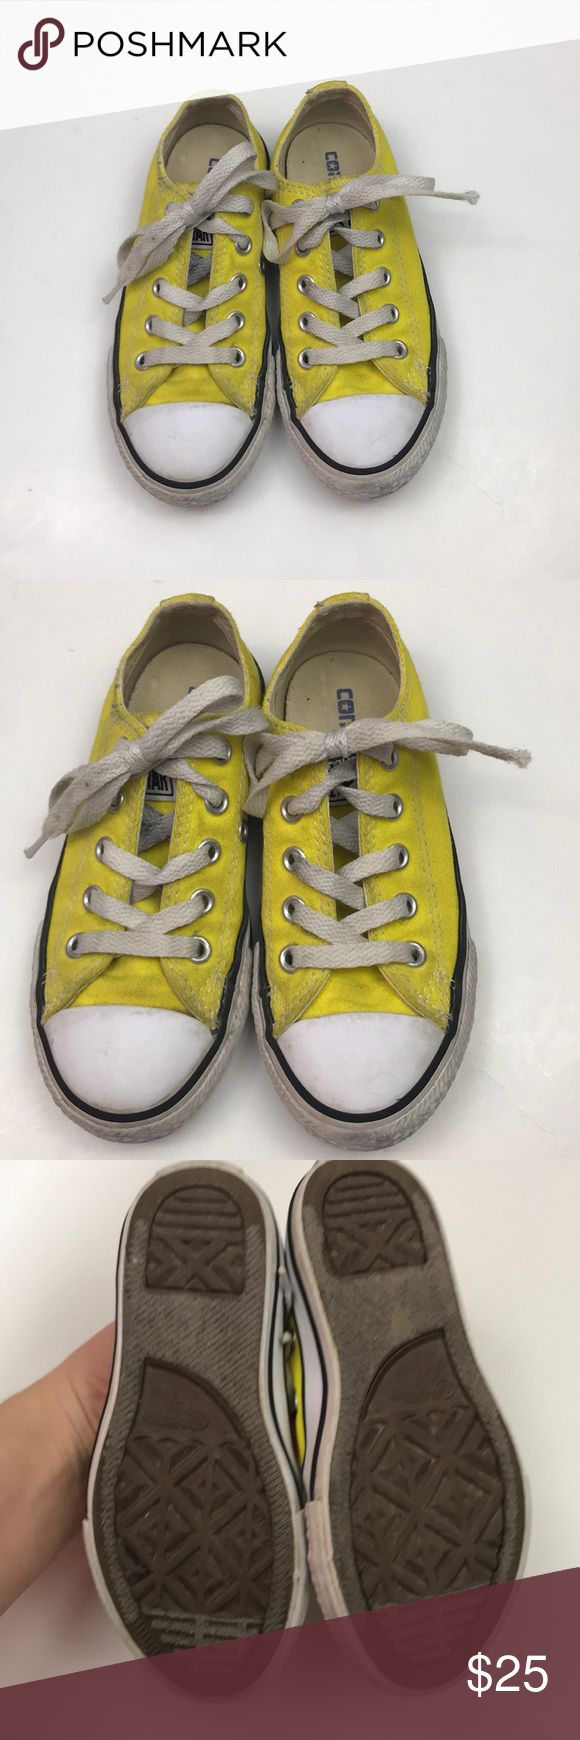 "Kids Converse Yellow Chuck Taylors Lace Up Shoes Condition - good shape   Color- yellow, white   Measurements - bottom of the sole Toe to heel - 8"" Widest part - 3""  No box.    S11218/1 Converse Shoes"